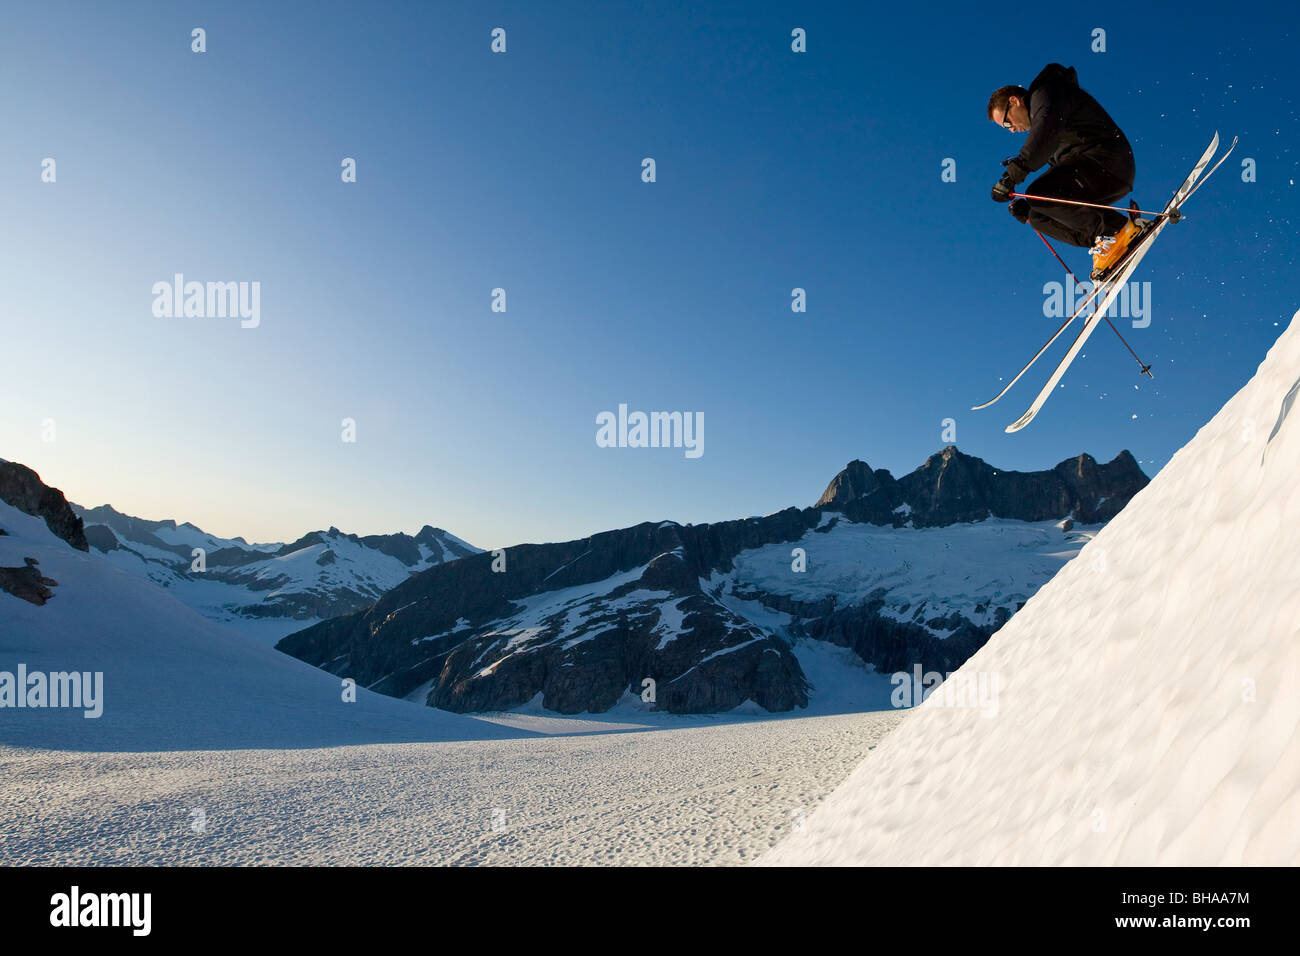 Alpine skier enjoying the wide open and uncrowded skiing in the Juneau area, Mendenhall Glacier, Southeast Alaska - Stock Image